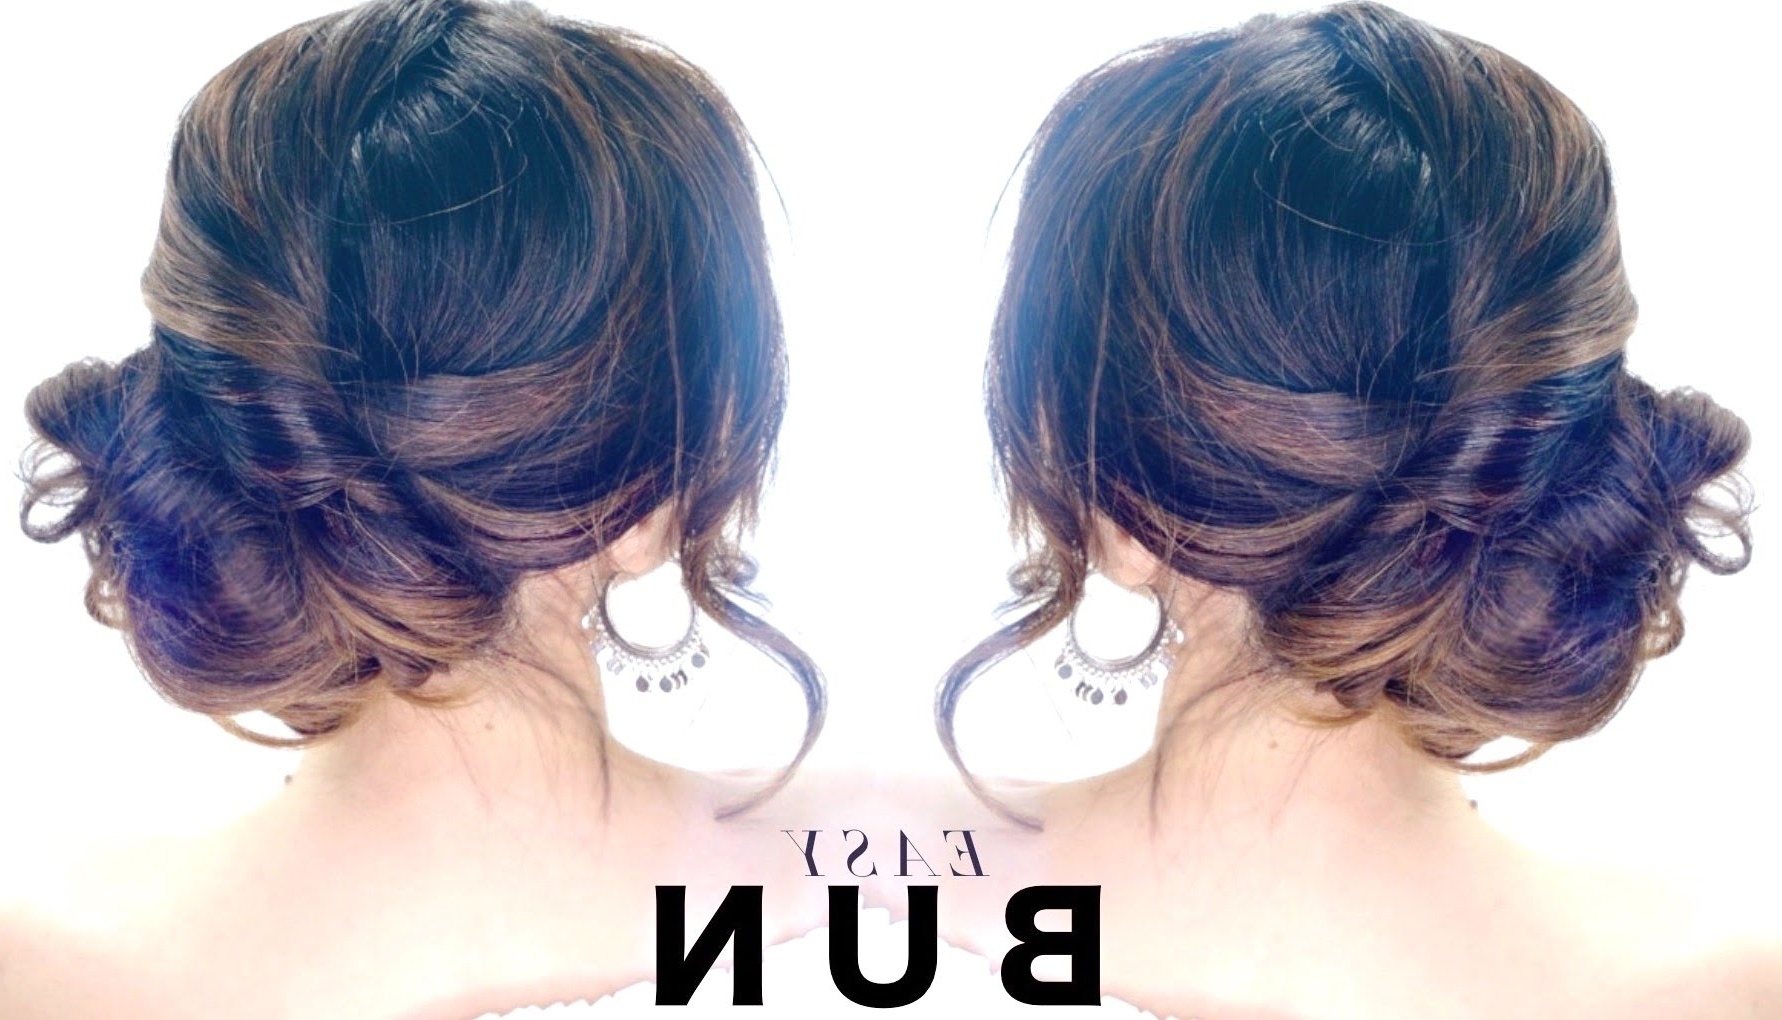 3 Minute Elegant Side Bun Hairstyle ☆ Easy Summer Updo Hairstyles Within Elegant Updo Hairstyles For Short Hair (View 4 of 15)